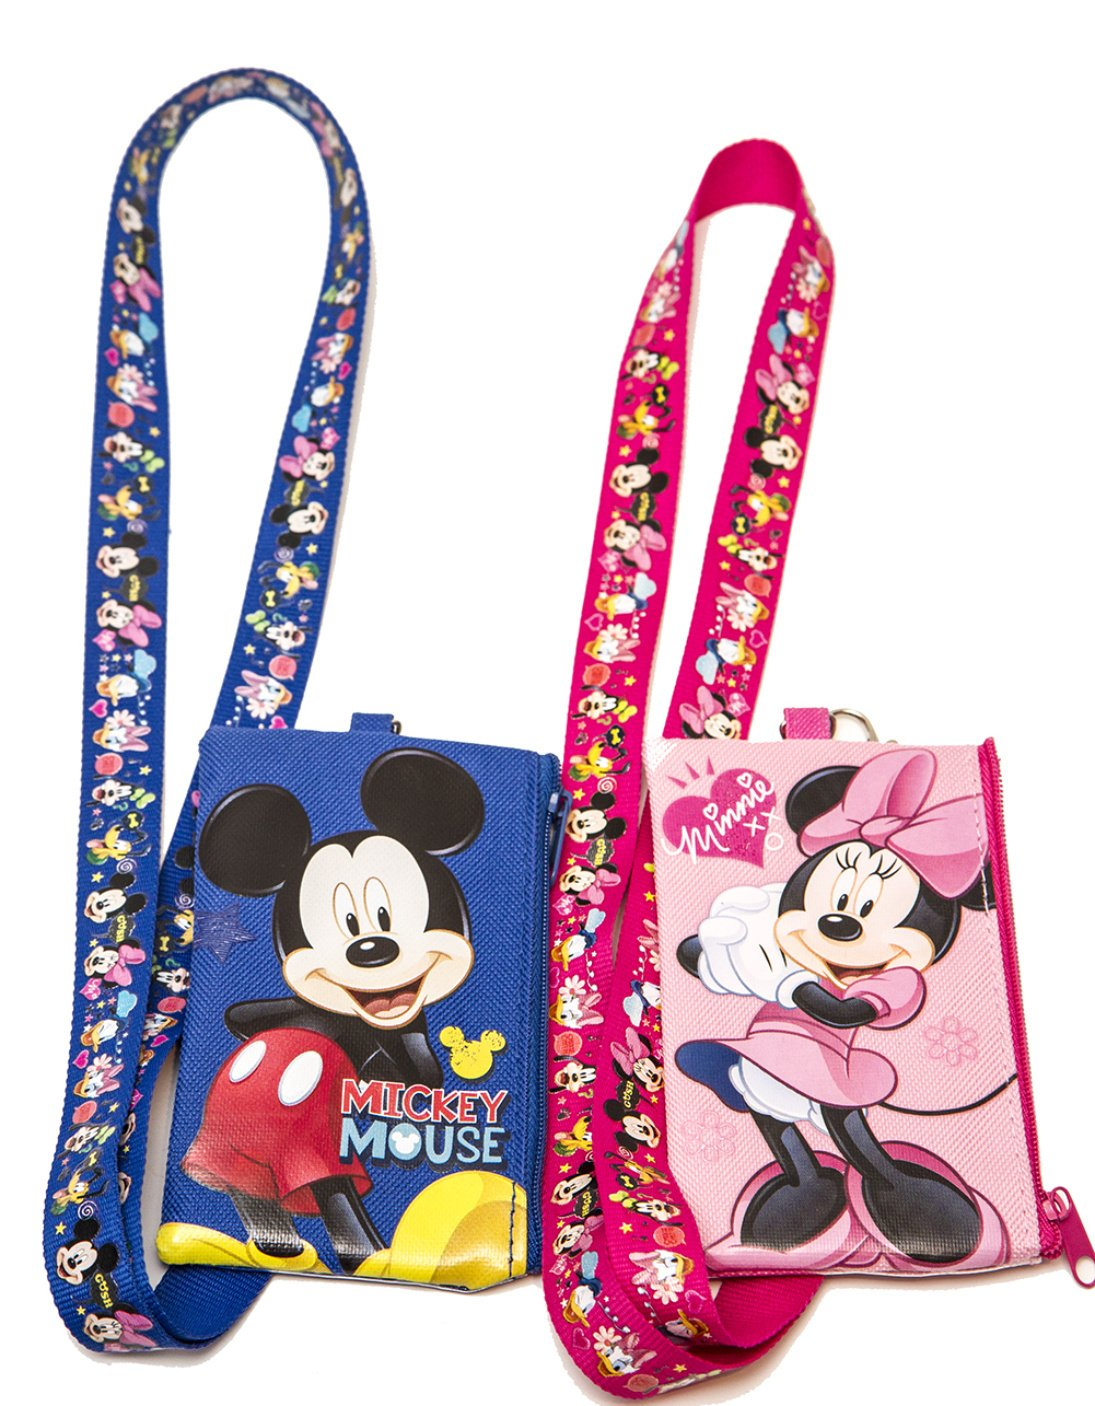 Disney Set of 2 Mickey and Friends Lanyards with Detachable Coin Purse